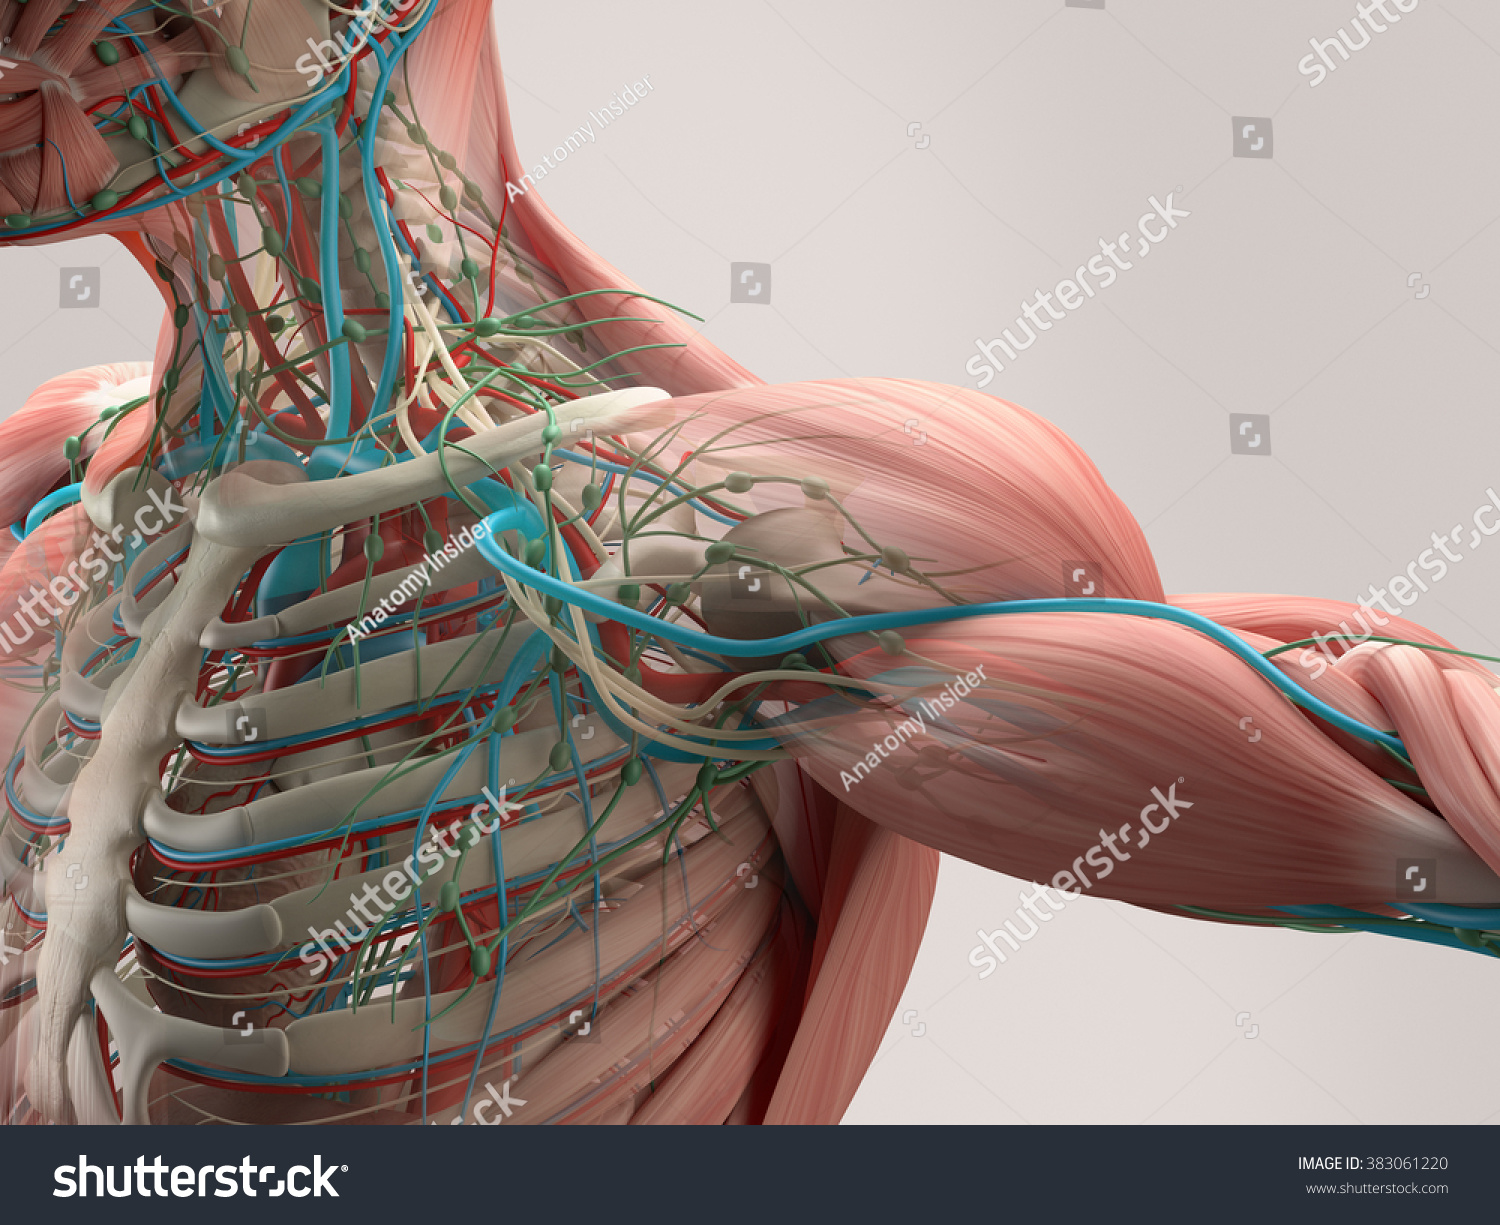 Royalty Free Stock Illustration Of Human Anatomy Detail Shoulder